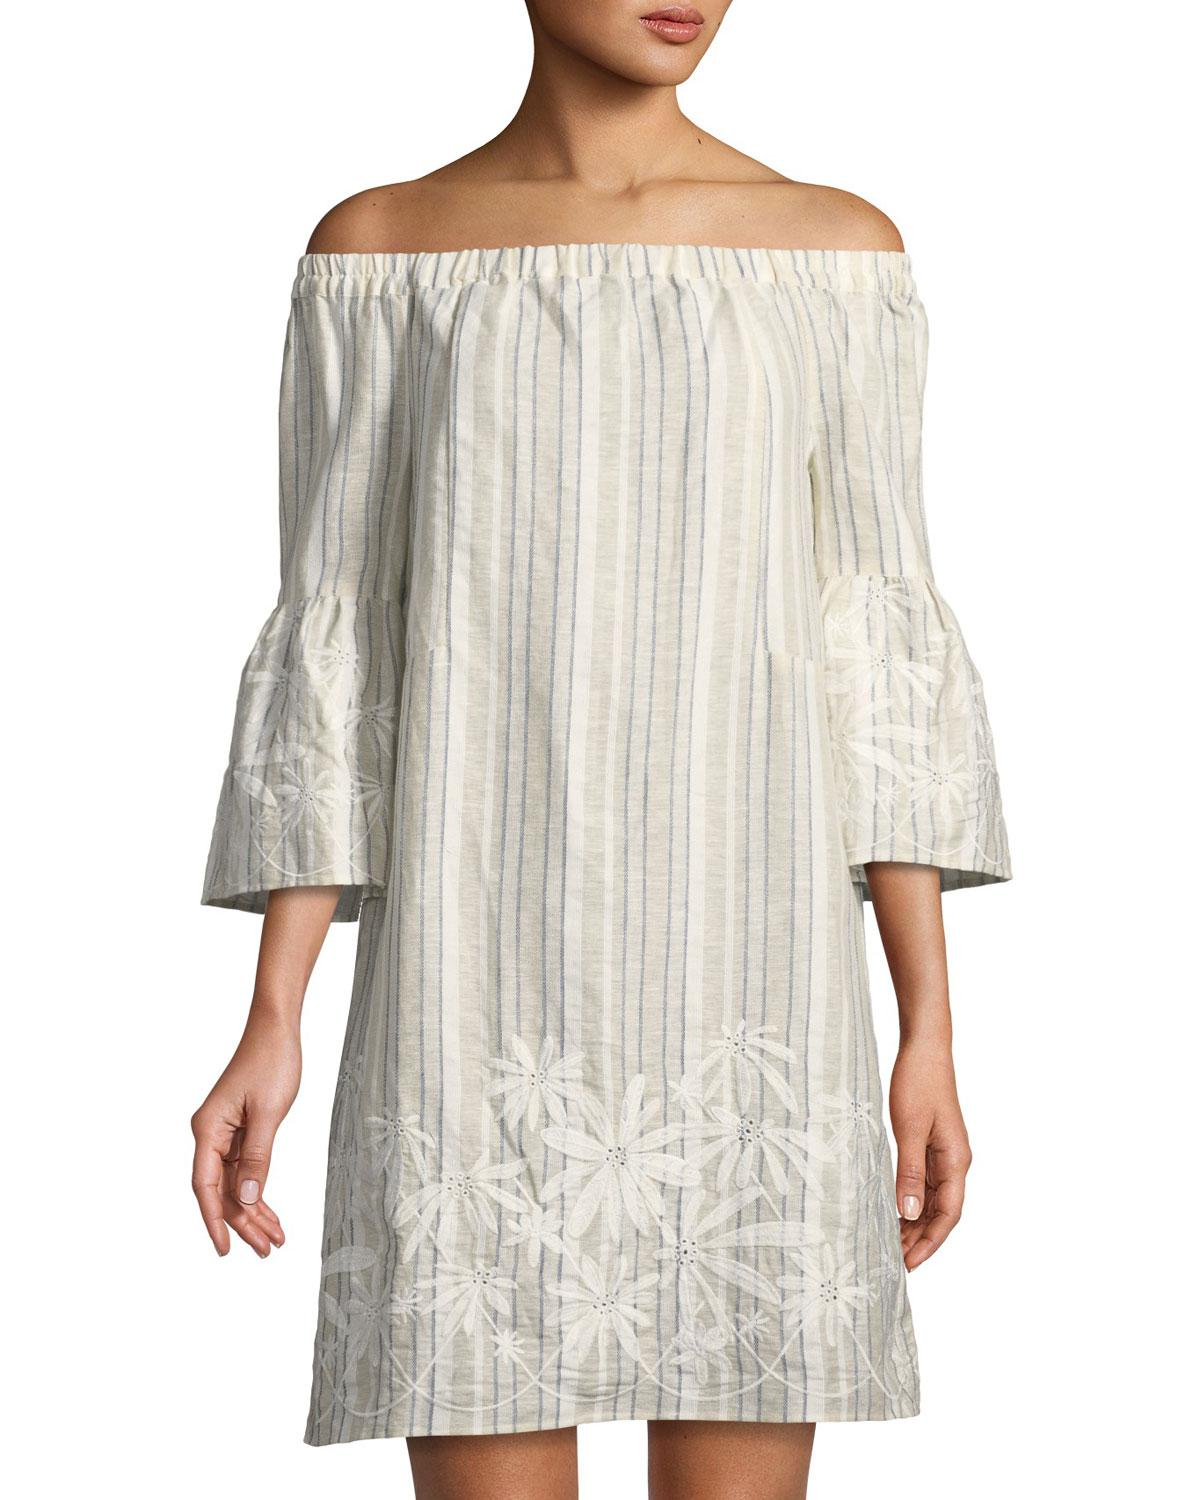 4d647c73d73 Lyst - Neiman Marcus Off-the-shoulder Embroidered Striped Linen ...